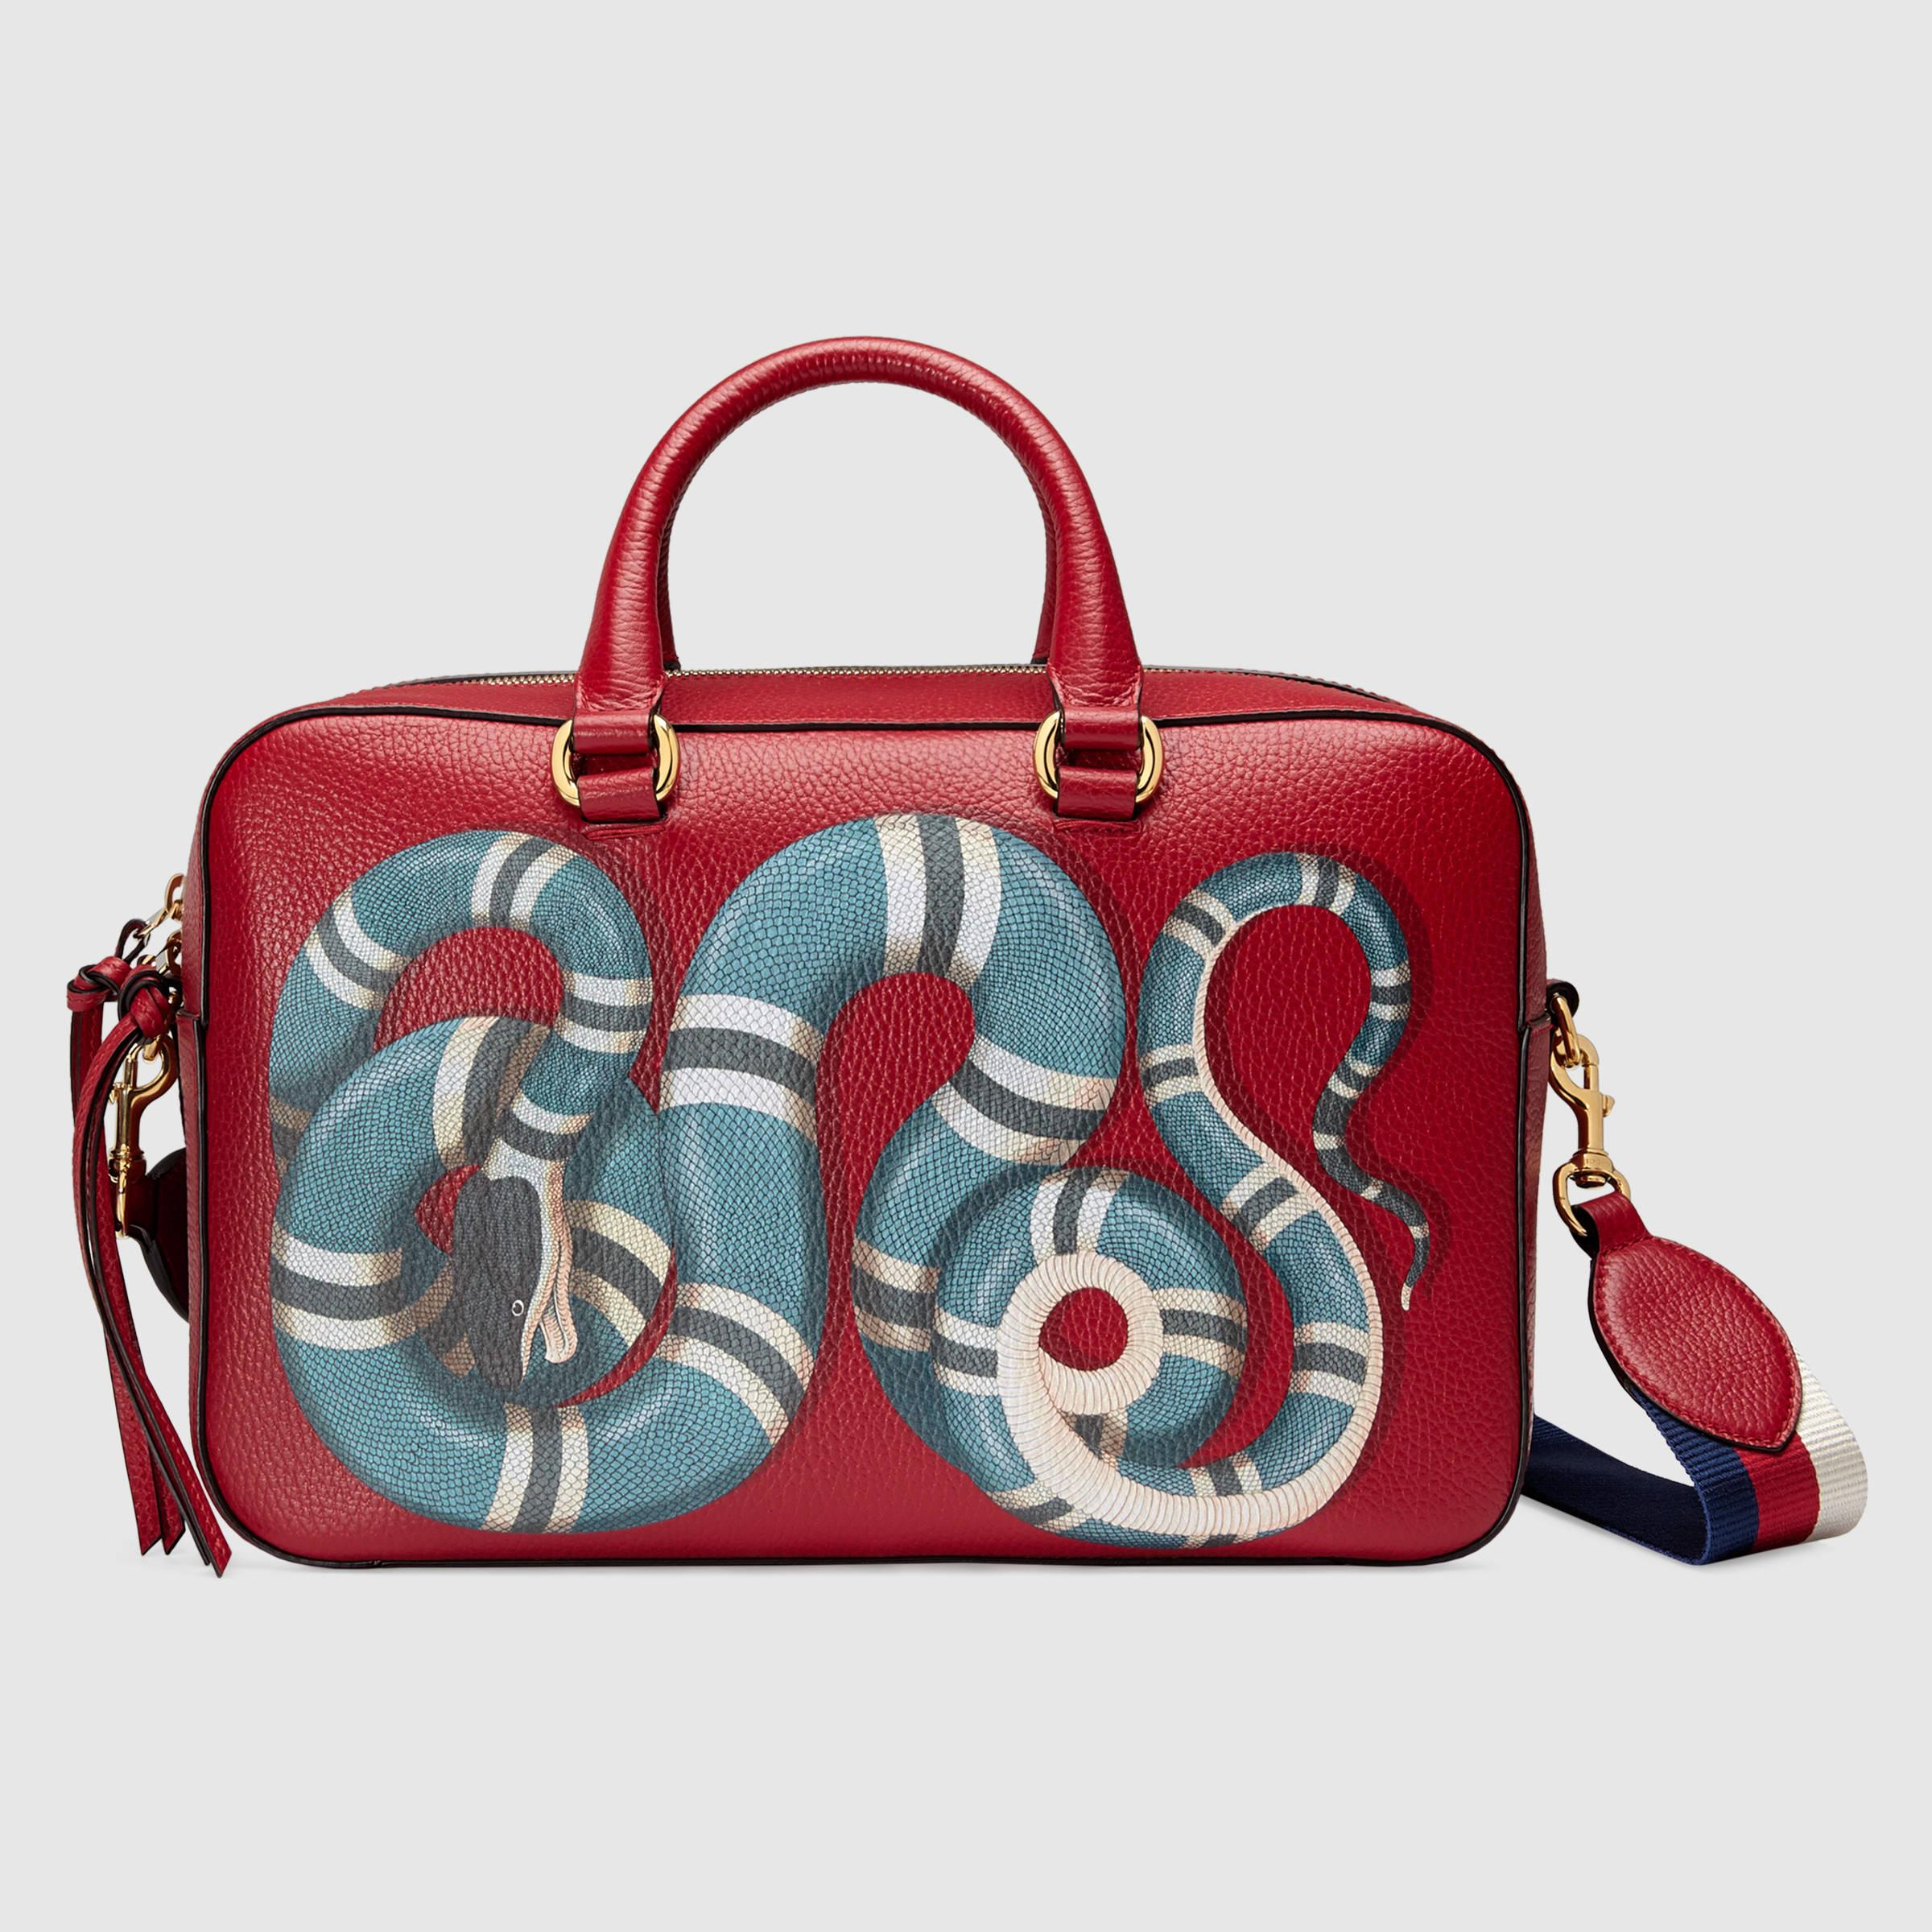 42882fa0fe7147 Gucci Snake Print Leather Top Handle Bag - Lyst